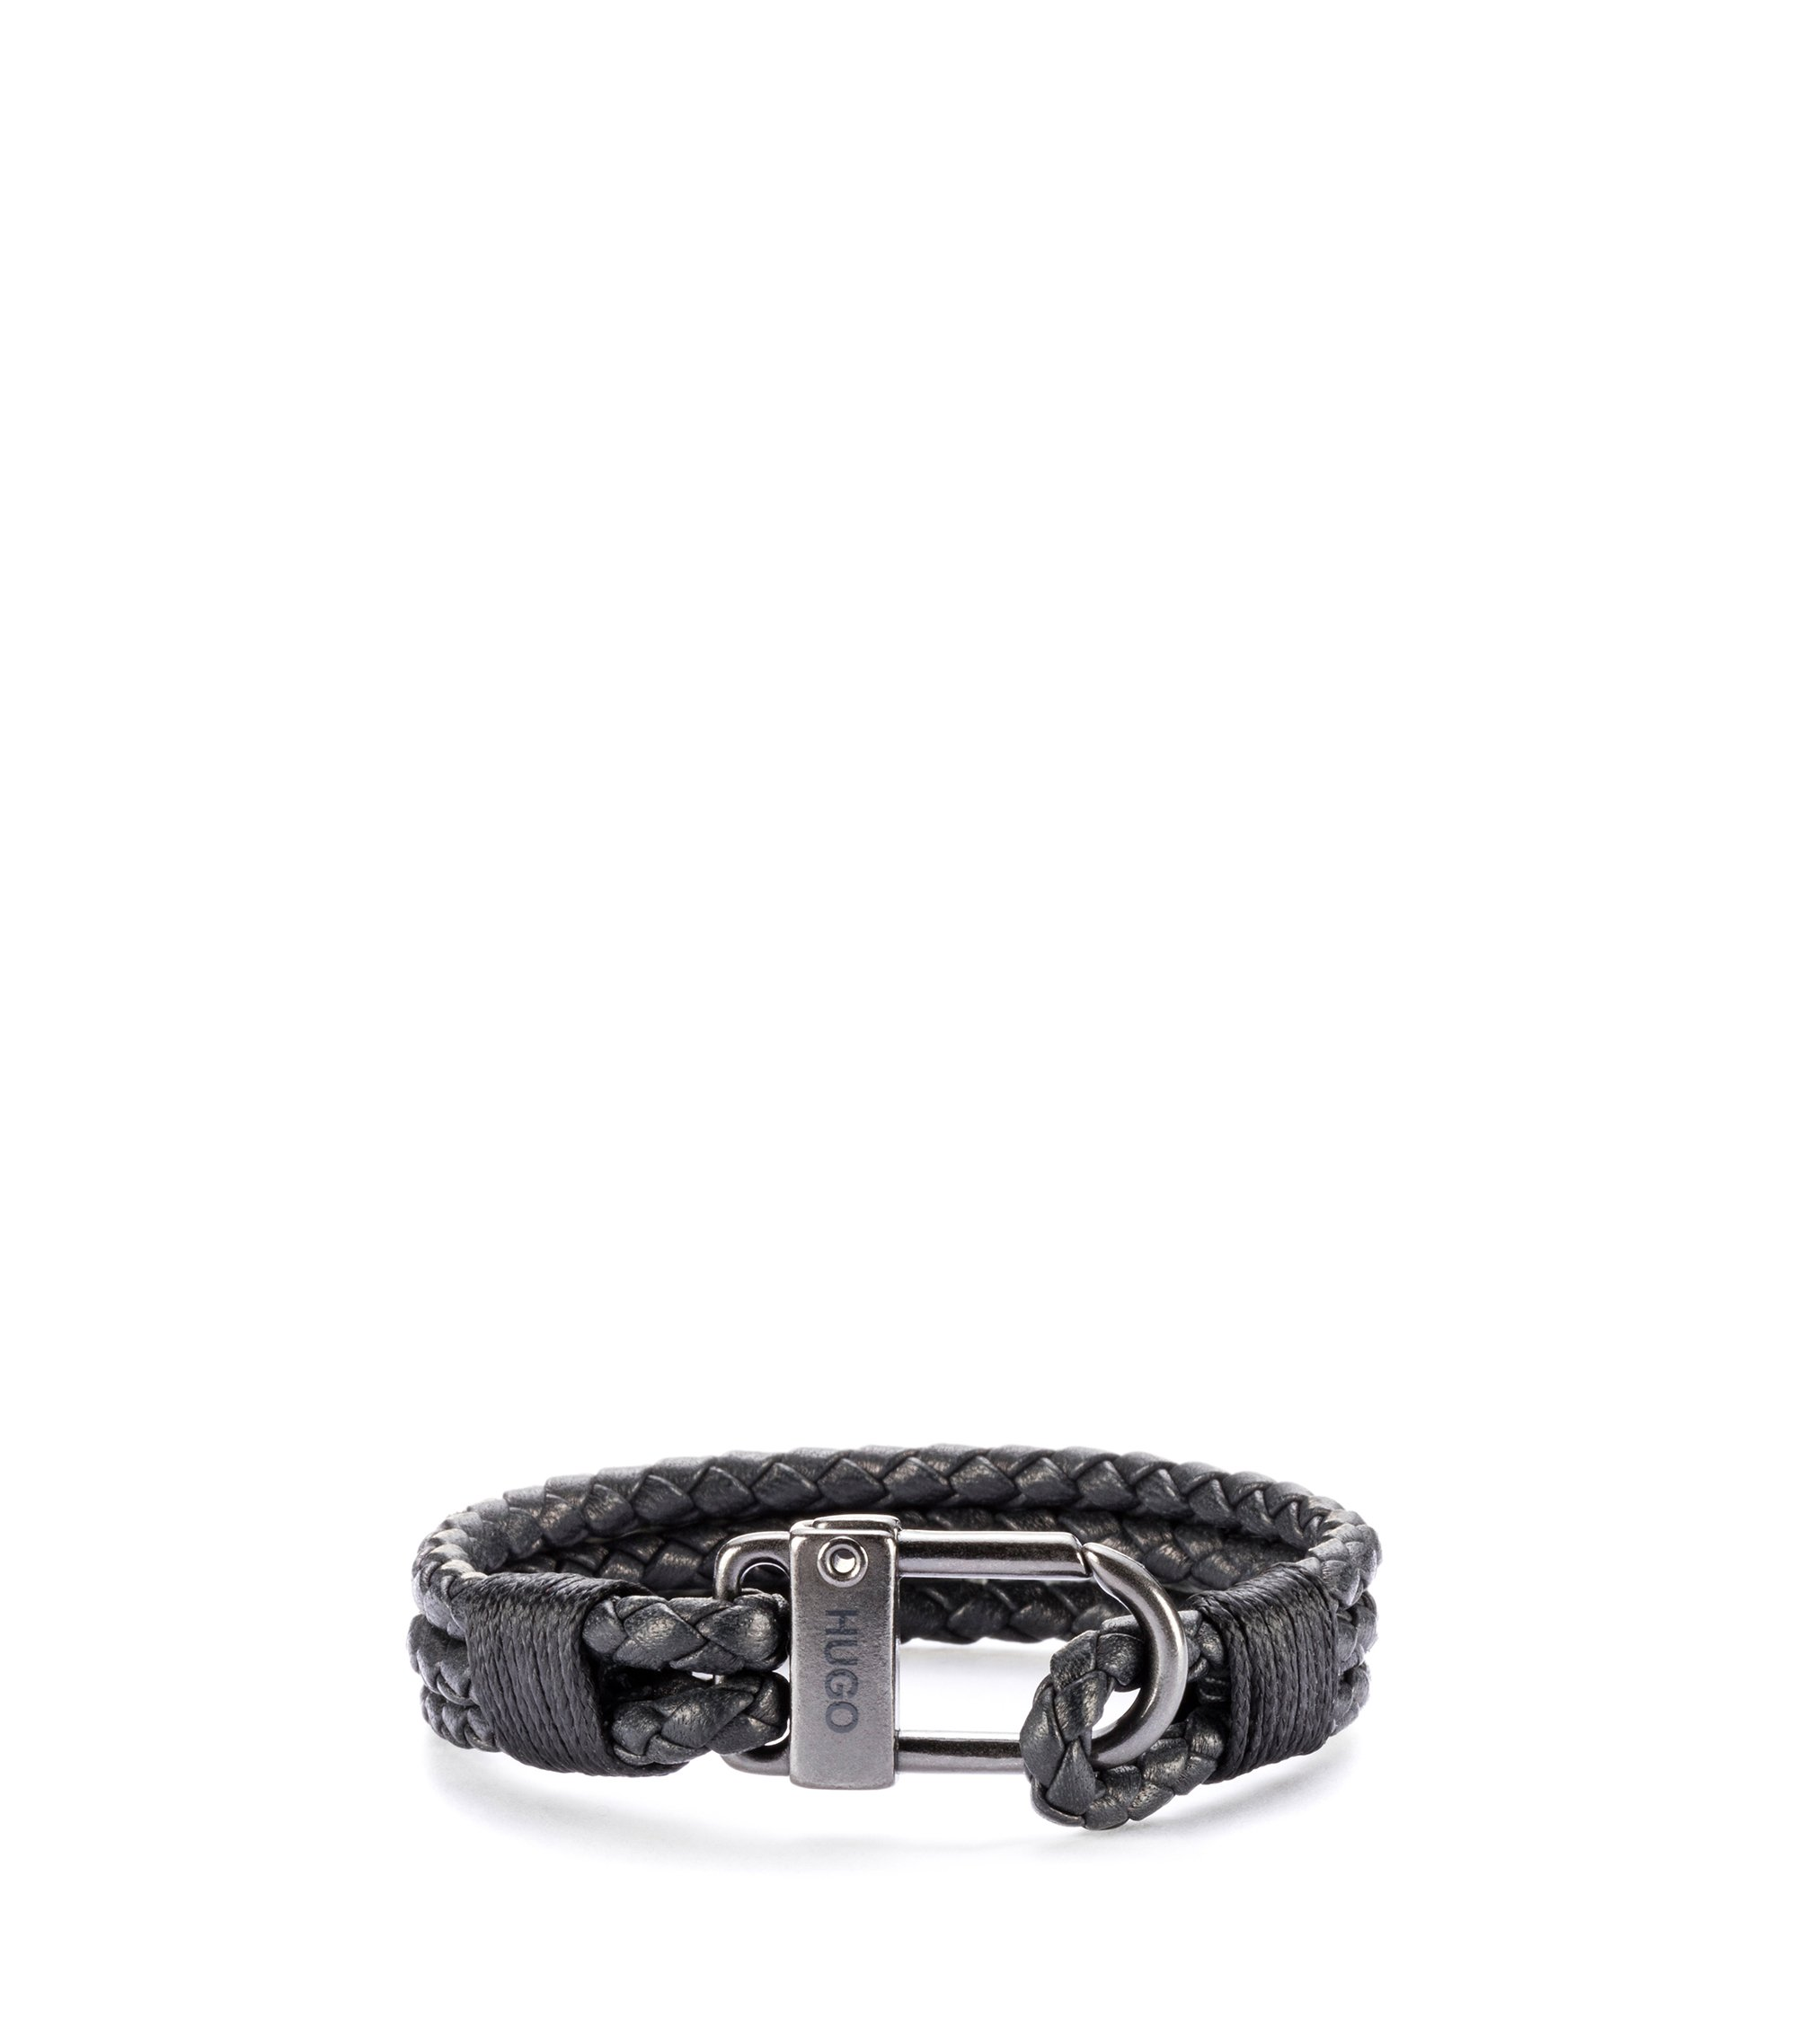 Braided Italian leather bracelet with carabiner fastening, Black